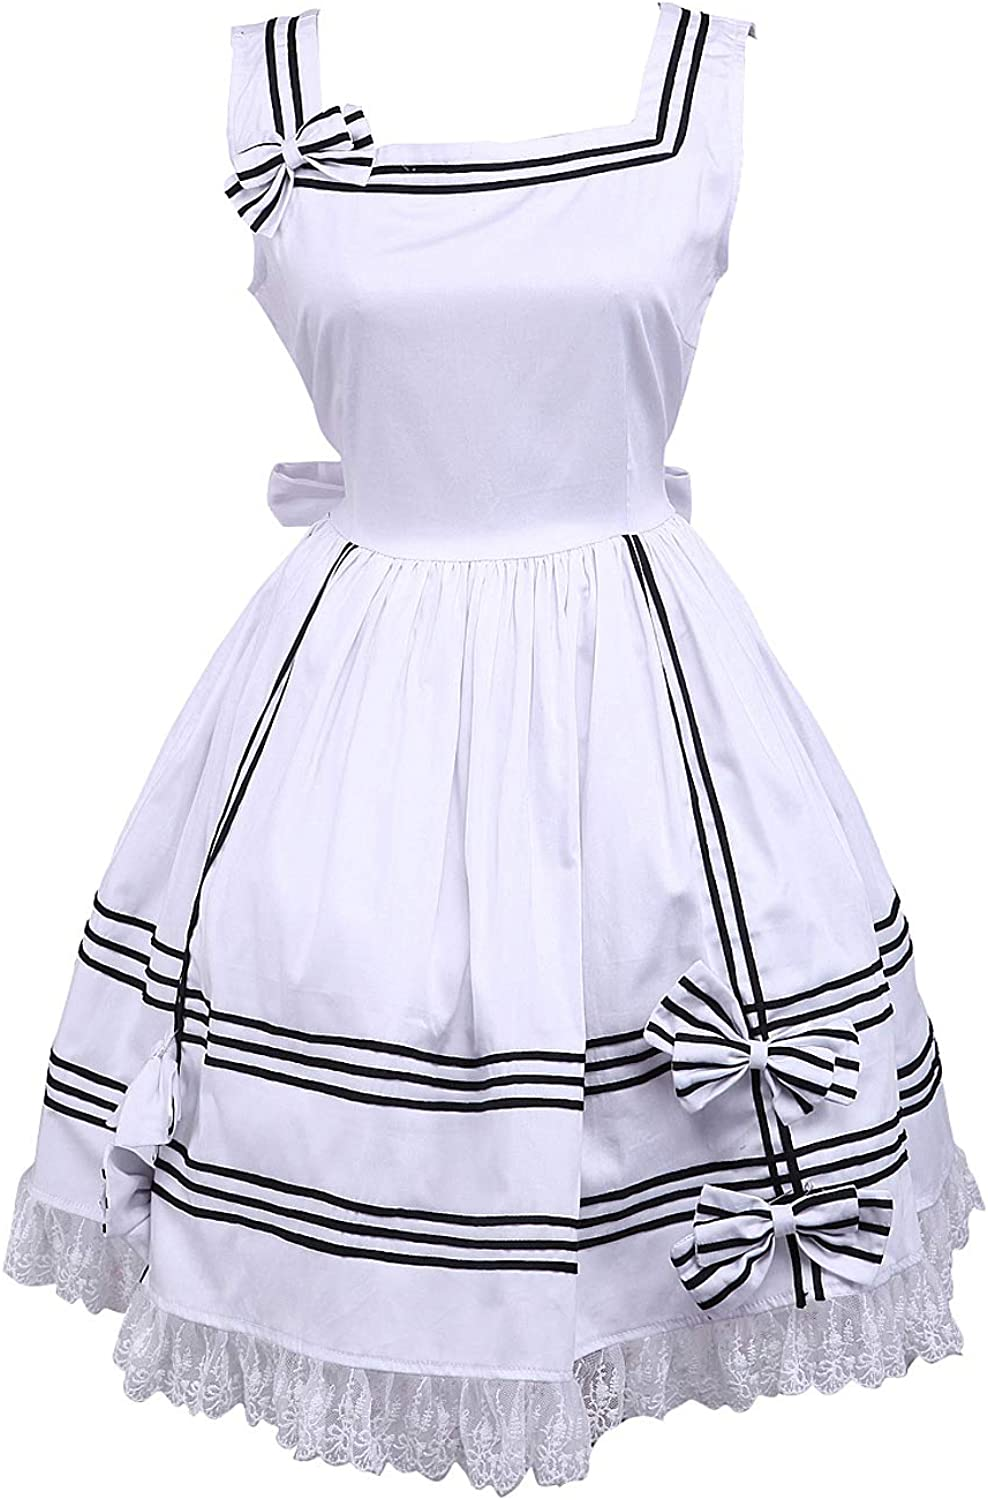 Antaina White Cotton Ruffle Lace Classic Halter Victorian Lolita Cosplay Dress